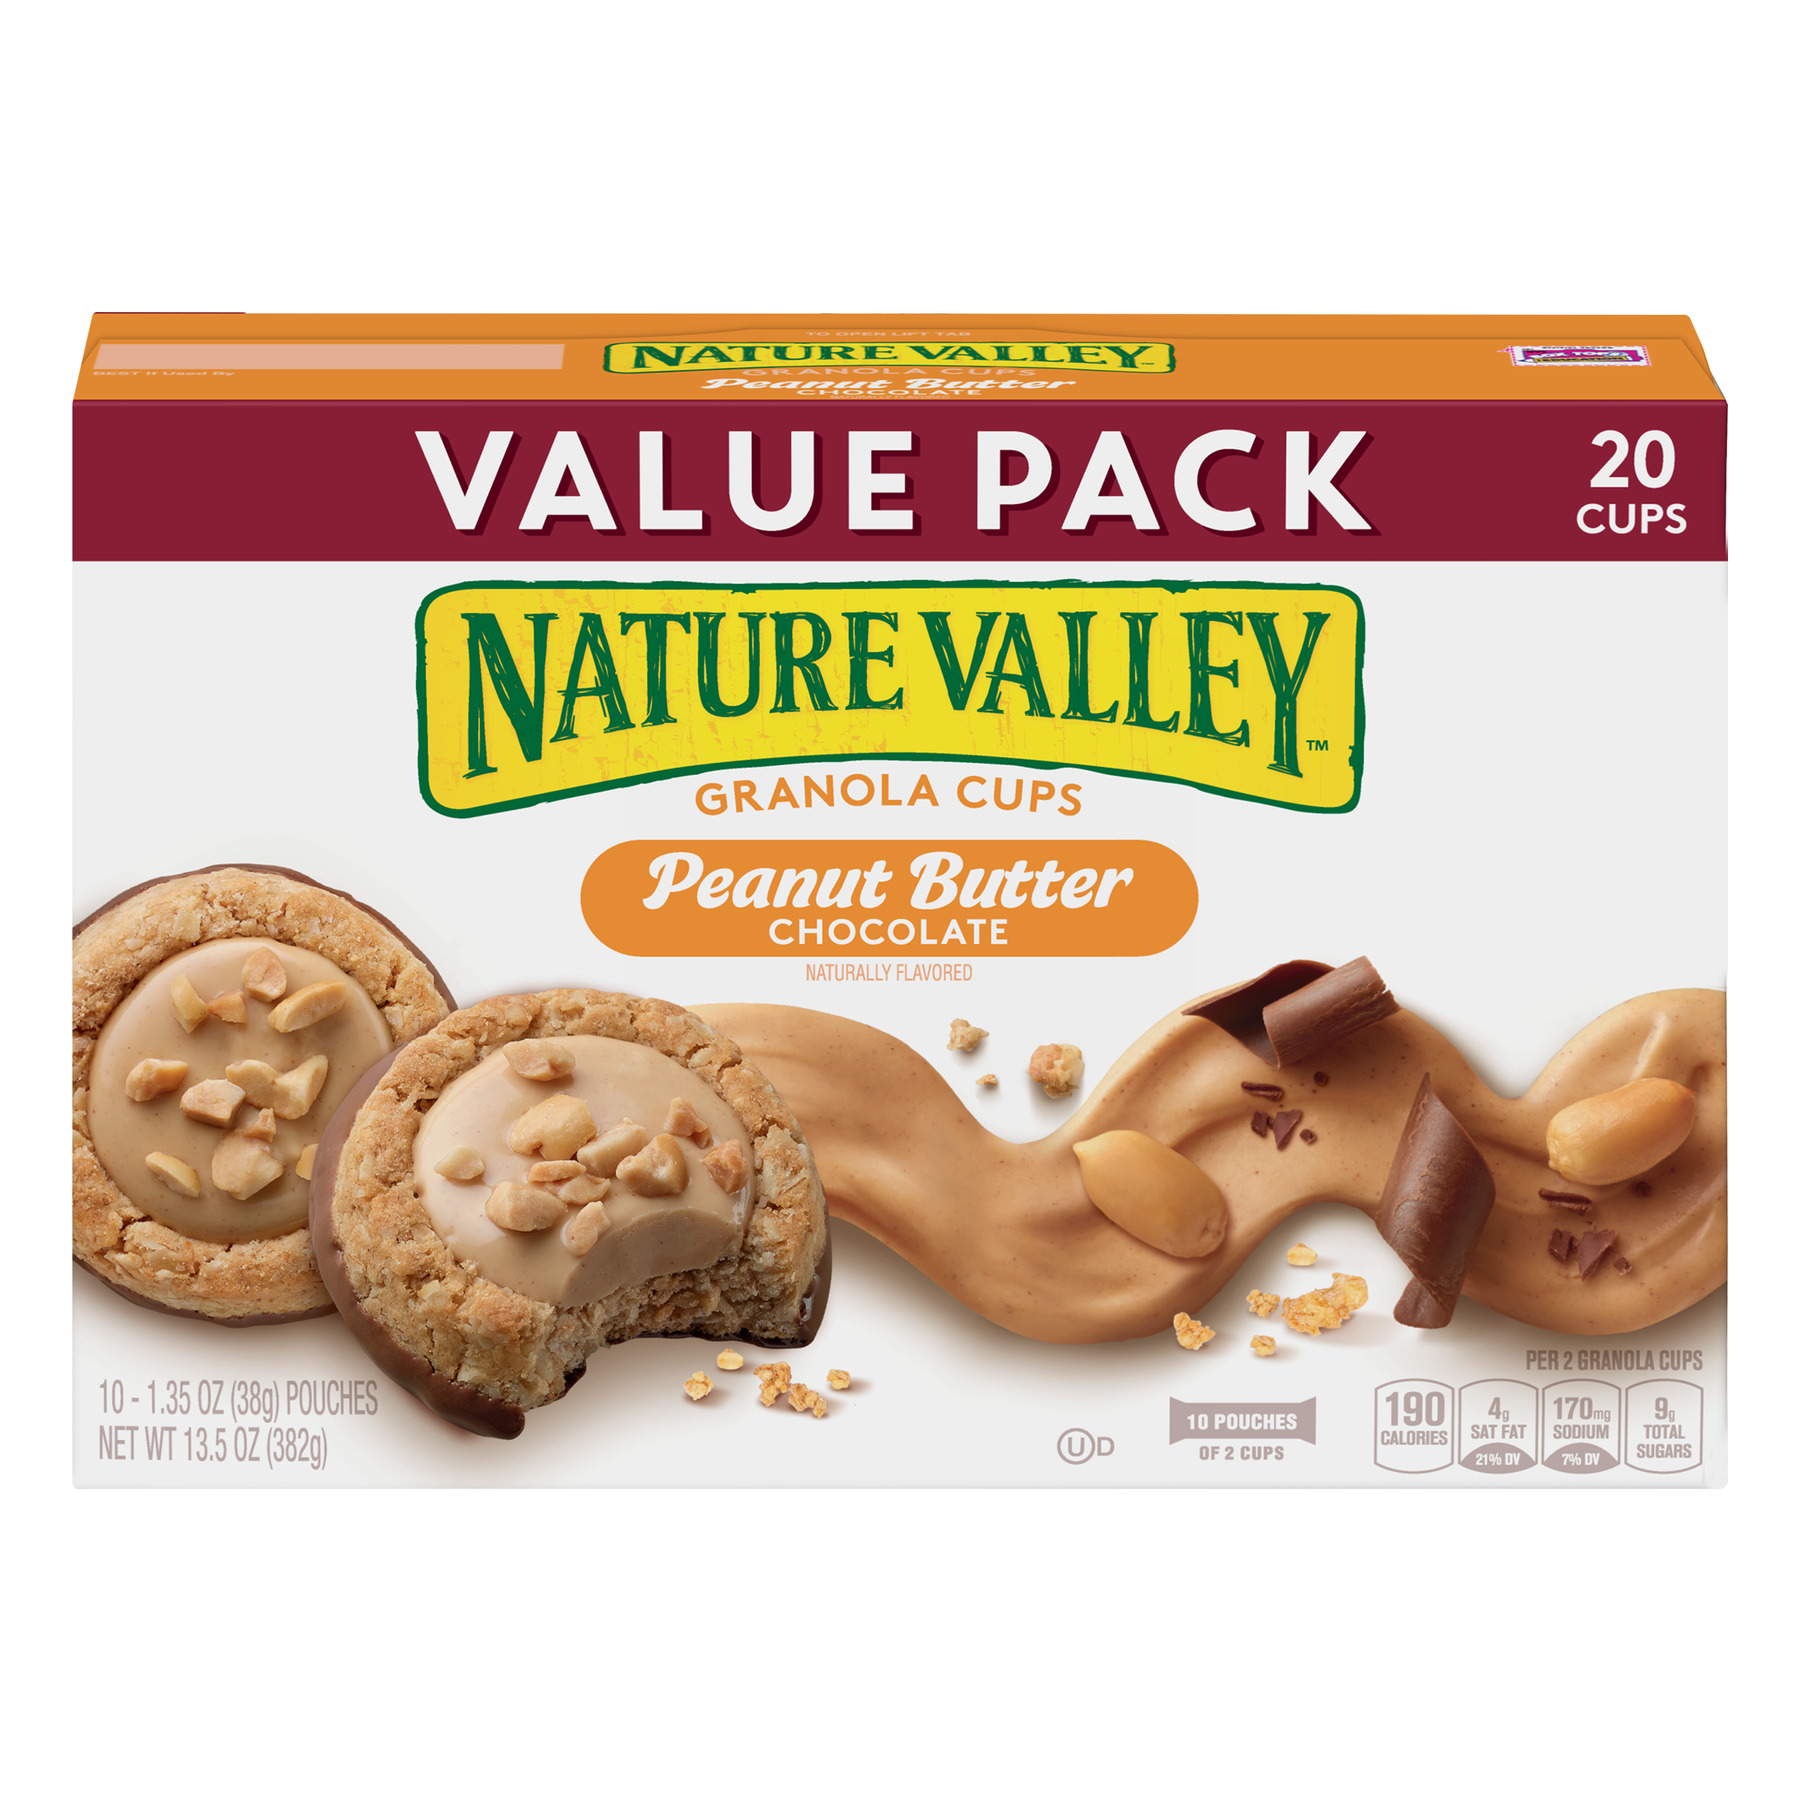 Nature Valley Peanut Butter and Chocolate Granola Cups, 13.5 oz, 1.35 OZ